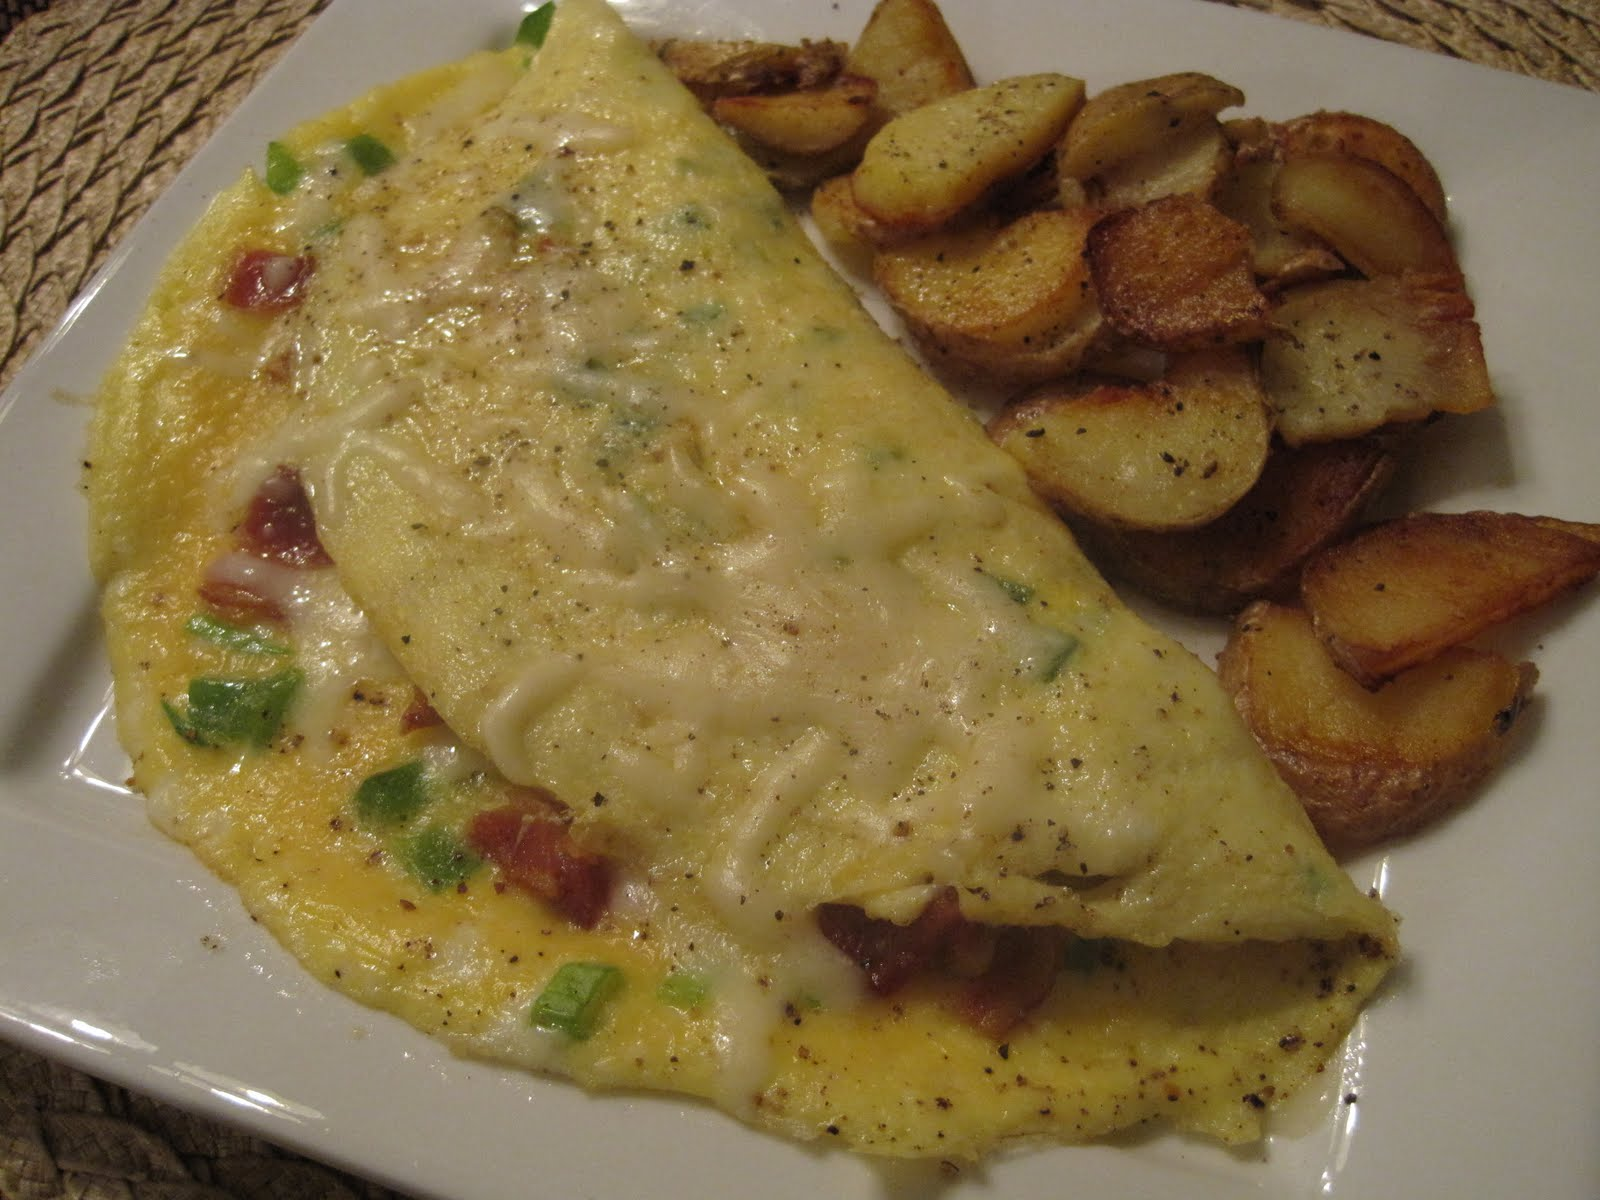 ... bacon and fried potato omelette bacon and fried potato omelette